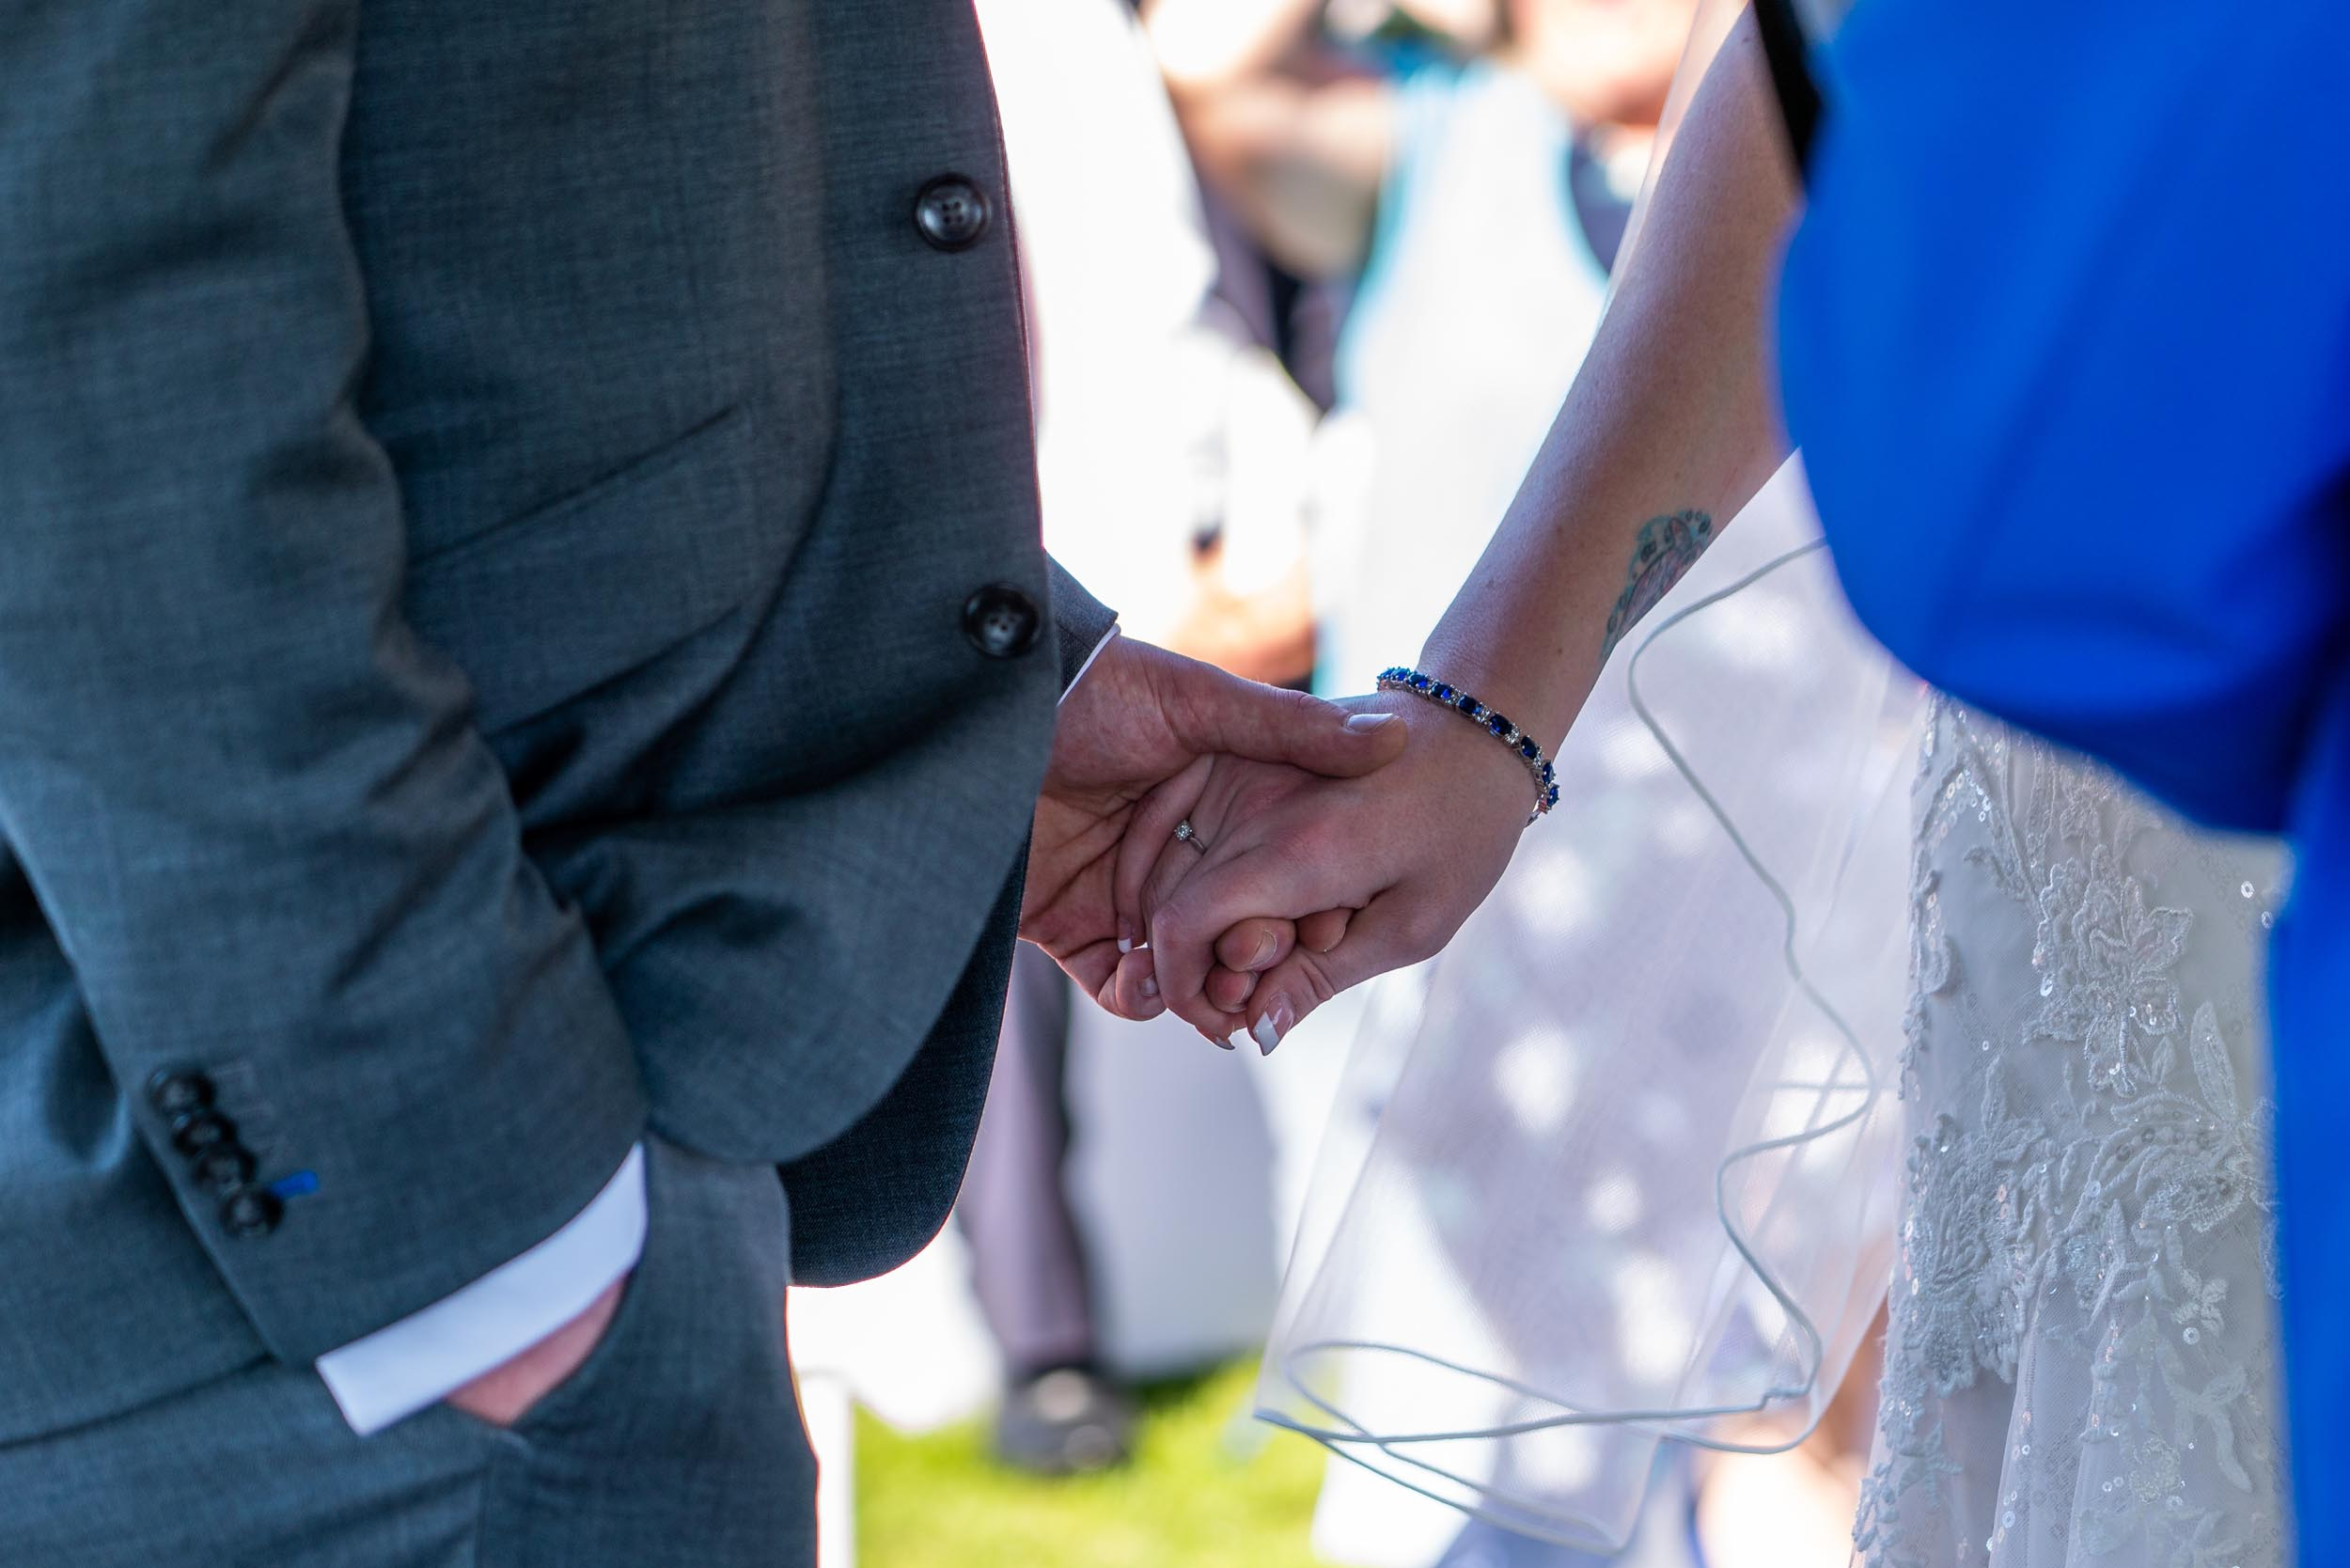 190420-Wedding-Ceremony-outdoors-The-Old-Rectory-139.jpg